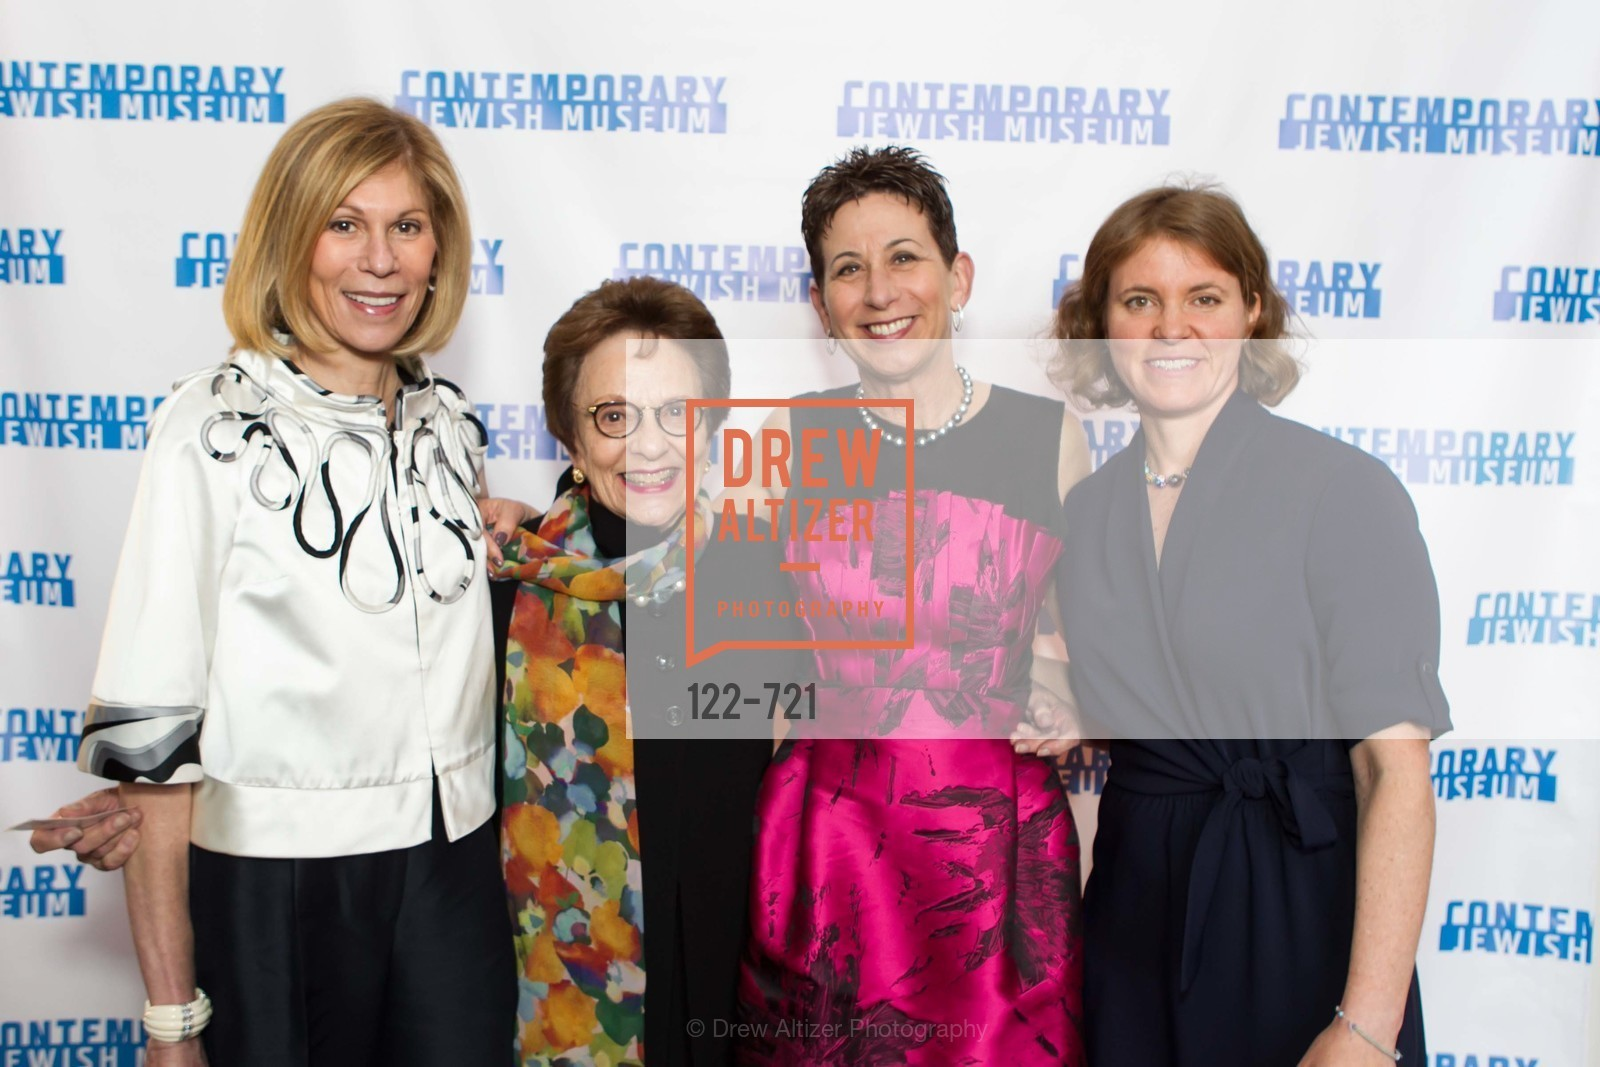 Vicki Kahn, Sisal Maybach, Dana Corvin, The 2015 Dorothy Saxe Invitational Celebration at the JEWISH MUSEUM, US, May 12th, 2015,Drew Altizer, Drew Altizer Photography, full-service agency, private events, San Francisco photographer, photographer california